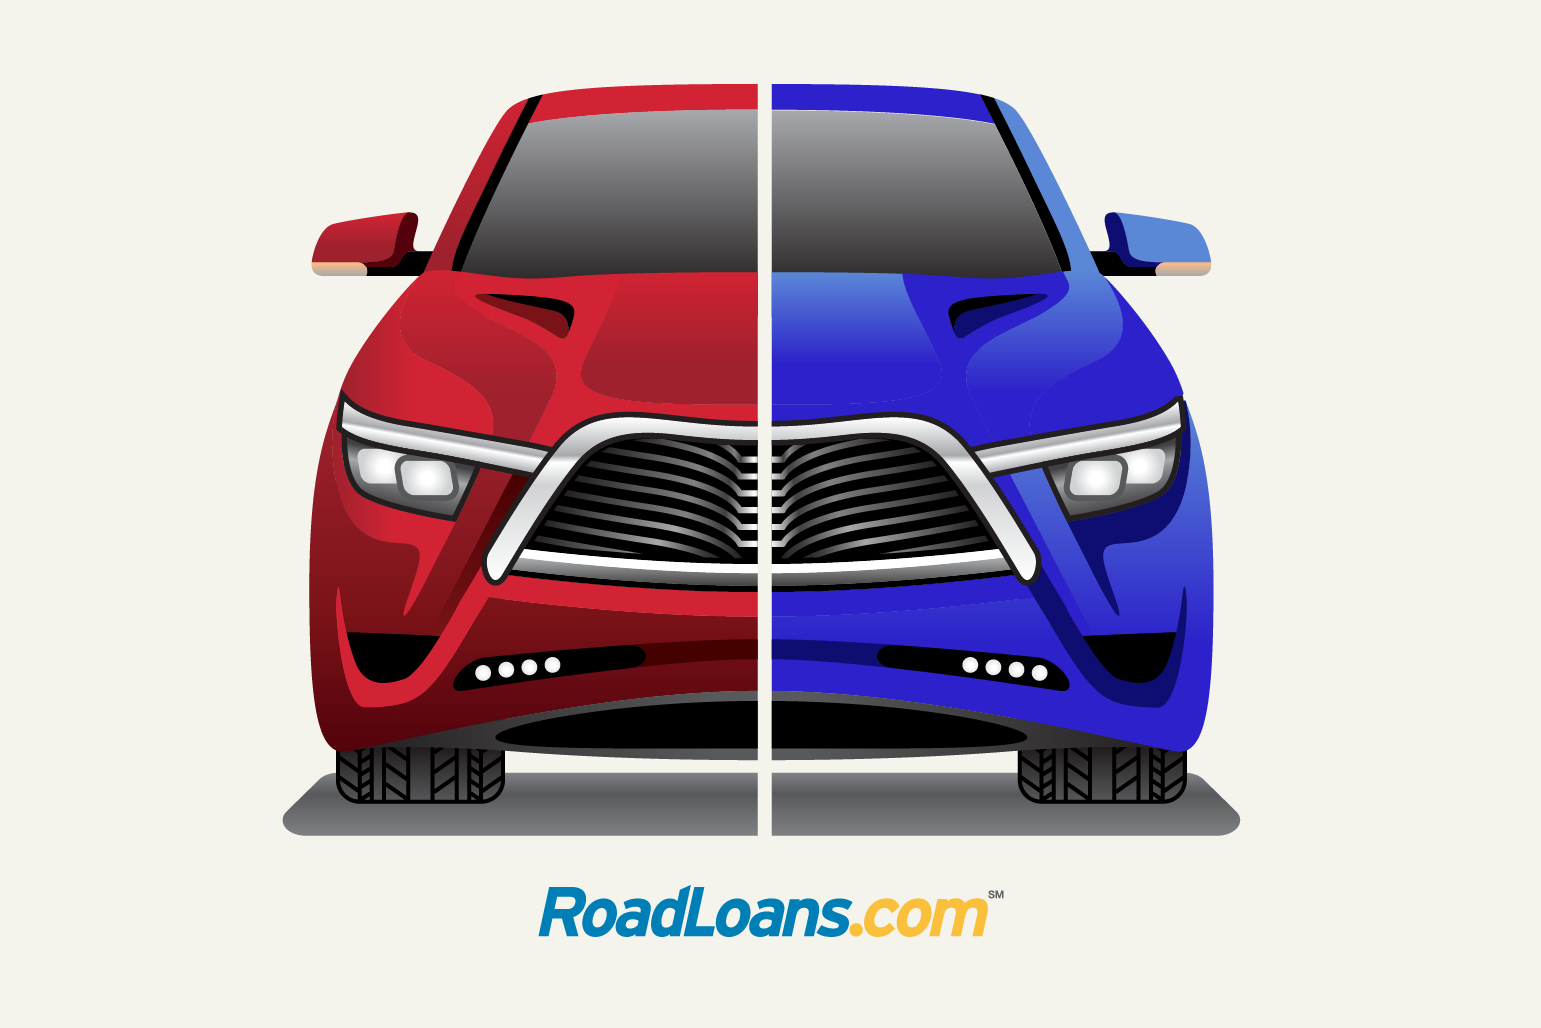 New Car Loan Vs. Used Car Loan: The Advantages of Each | RoadLoans